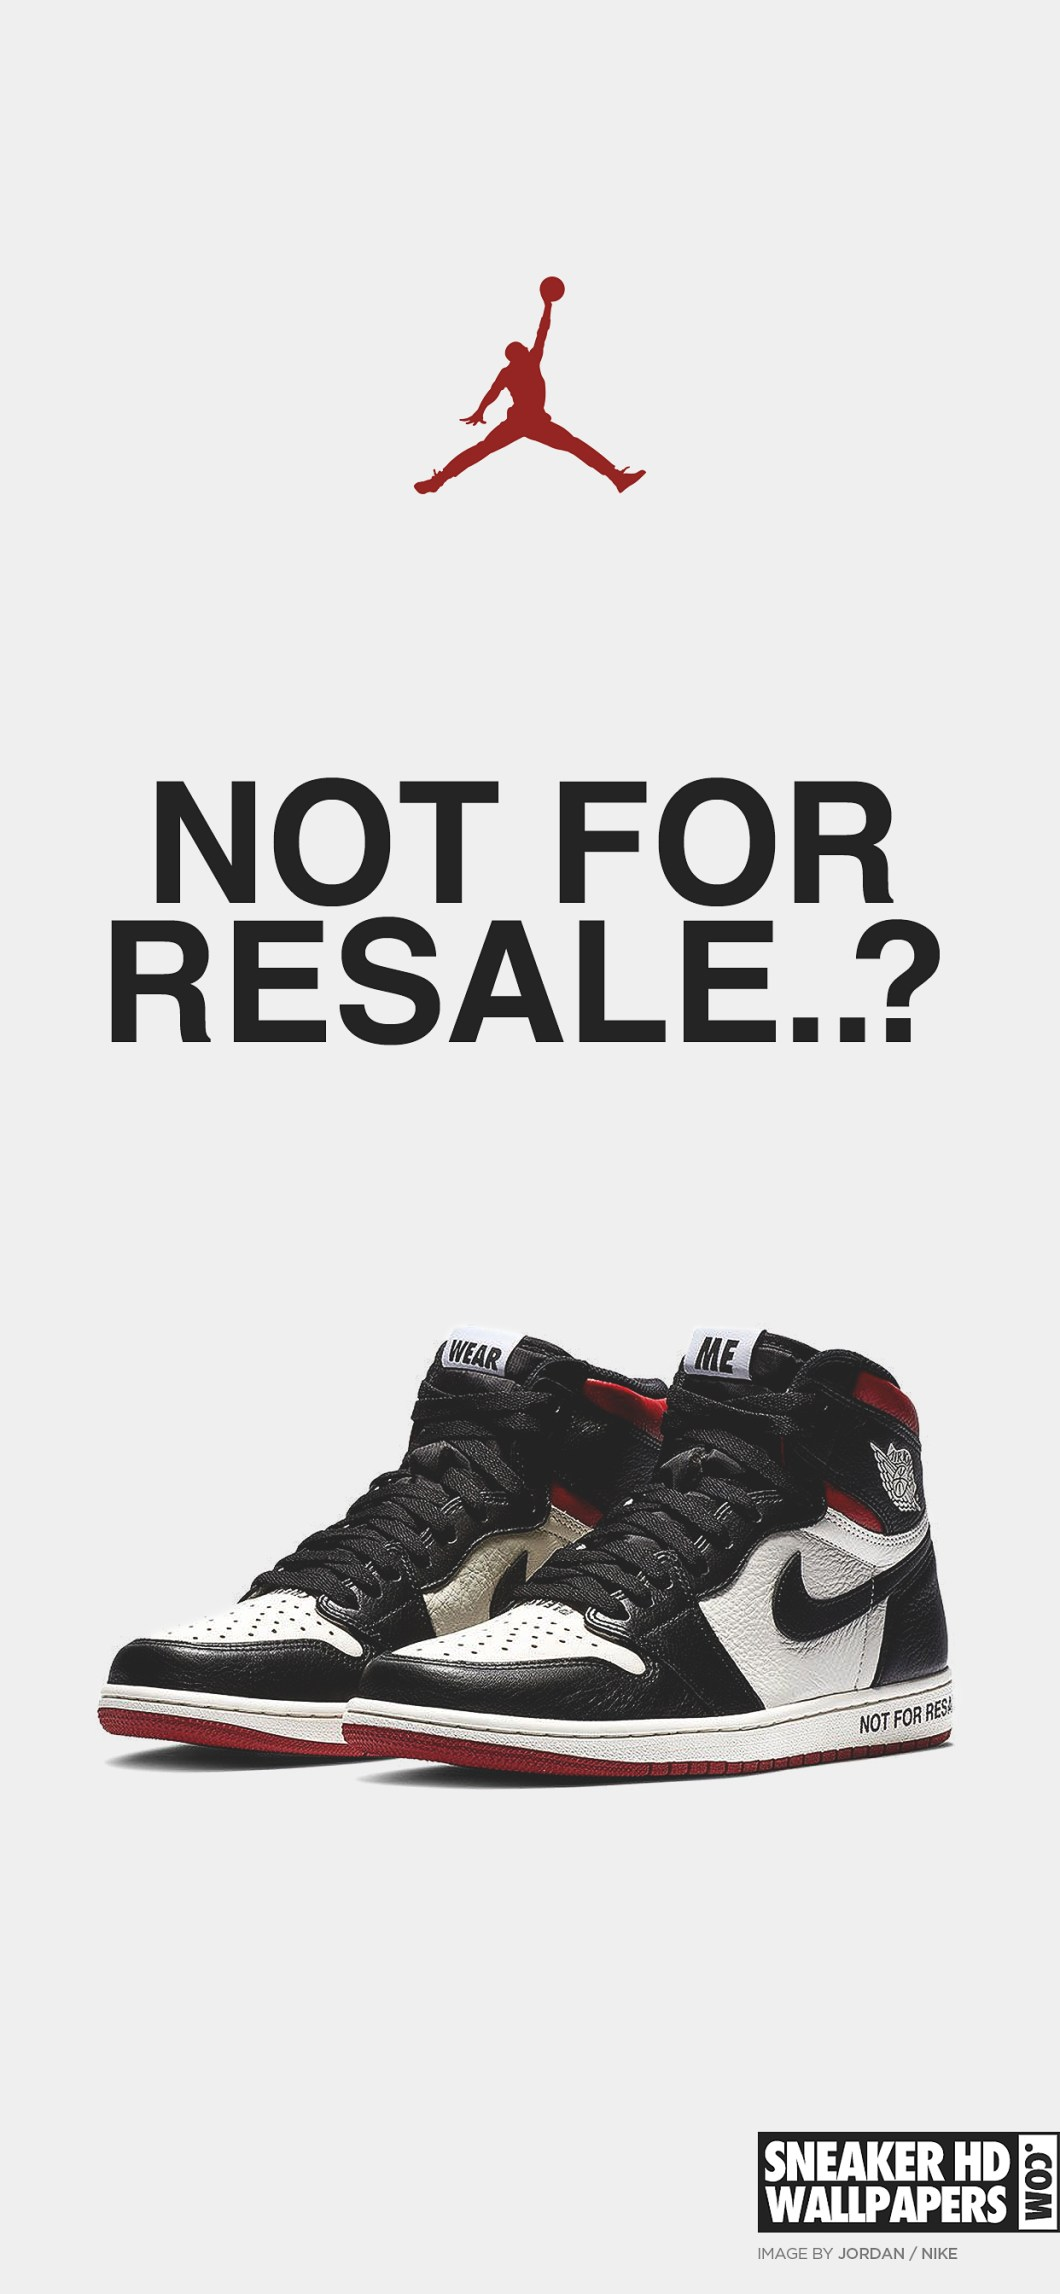 low priced 37f1c 484d2 4256x2828 Air Jordan Wallpapers Source · Air Jordan 1 Iphone Wallpaper  Walljdi org